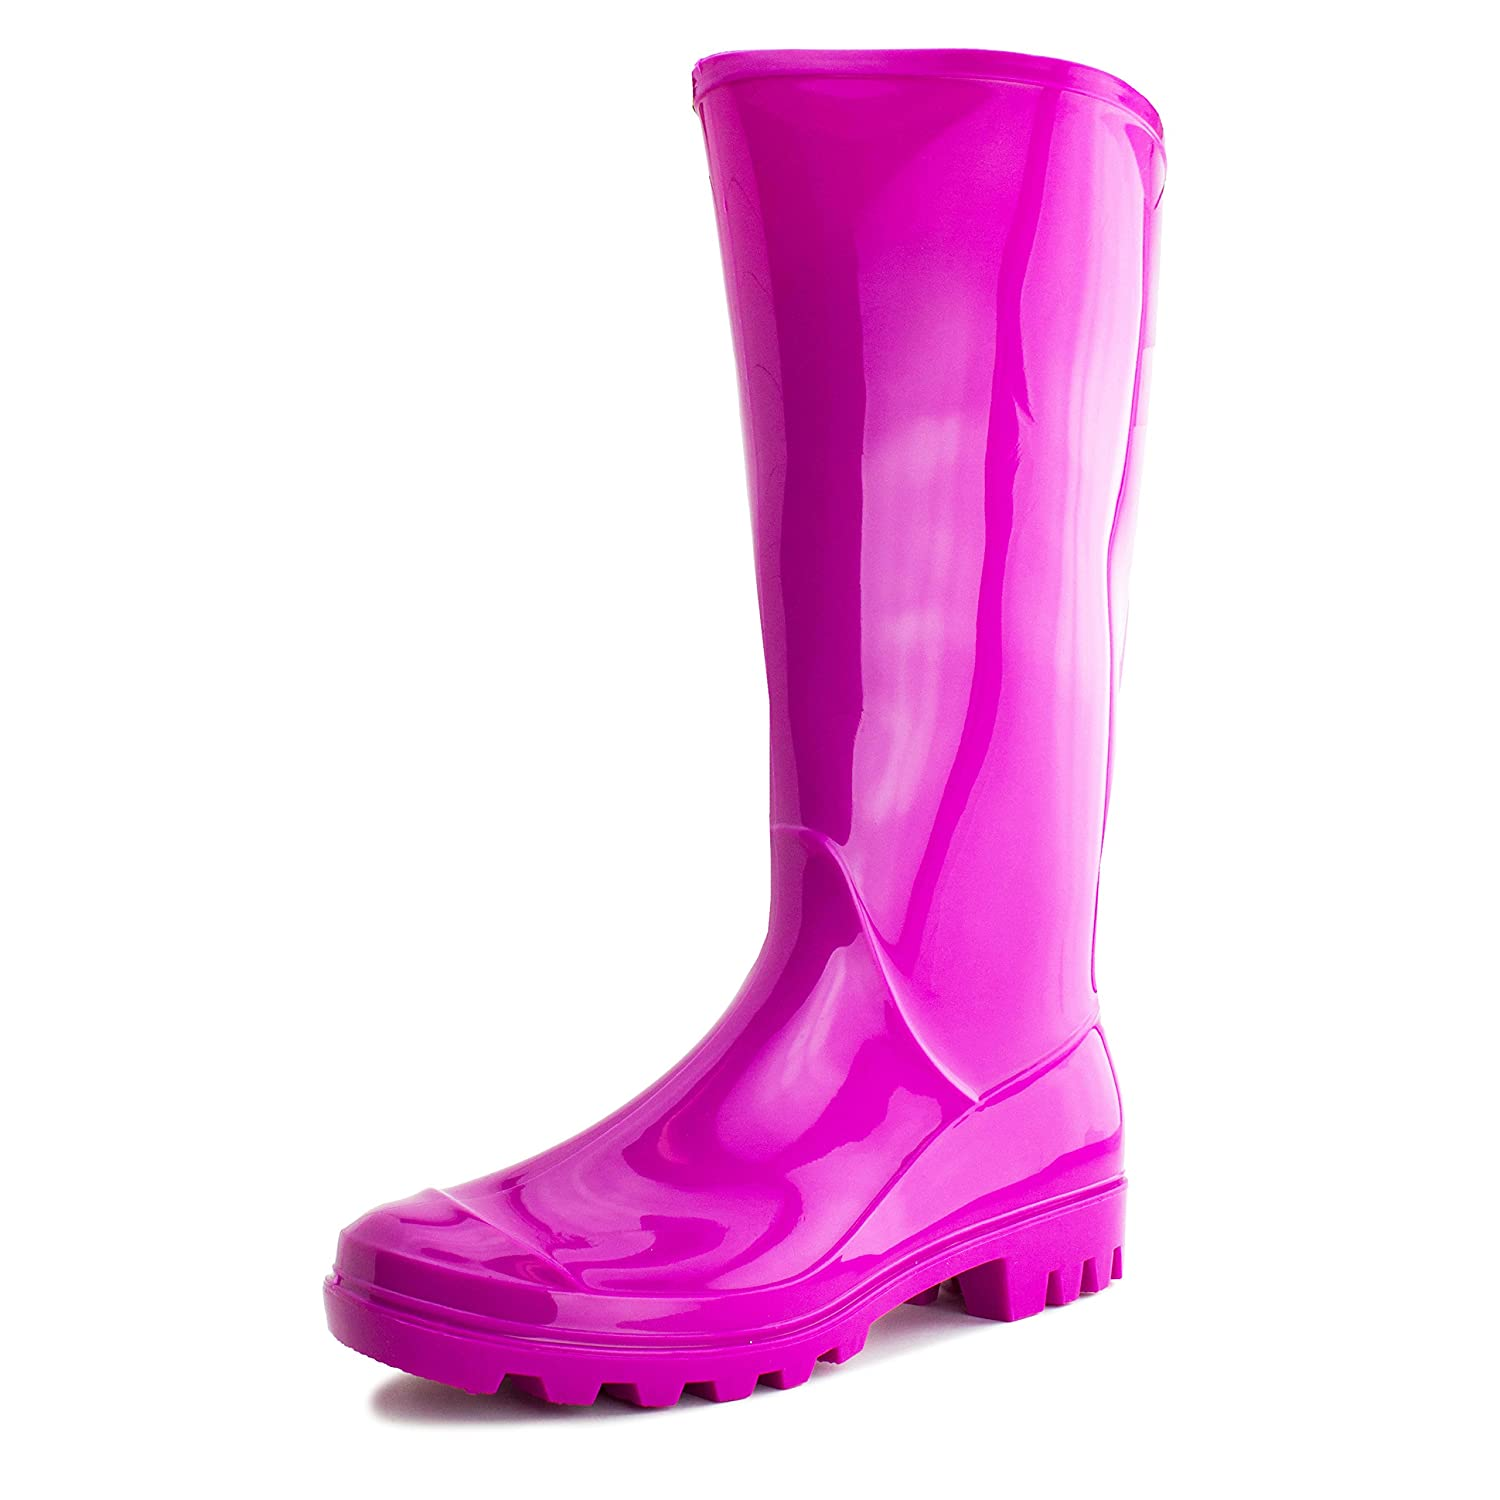 EASY Womens Four-Season Outdoor Rain Boots (Adults)